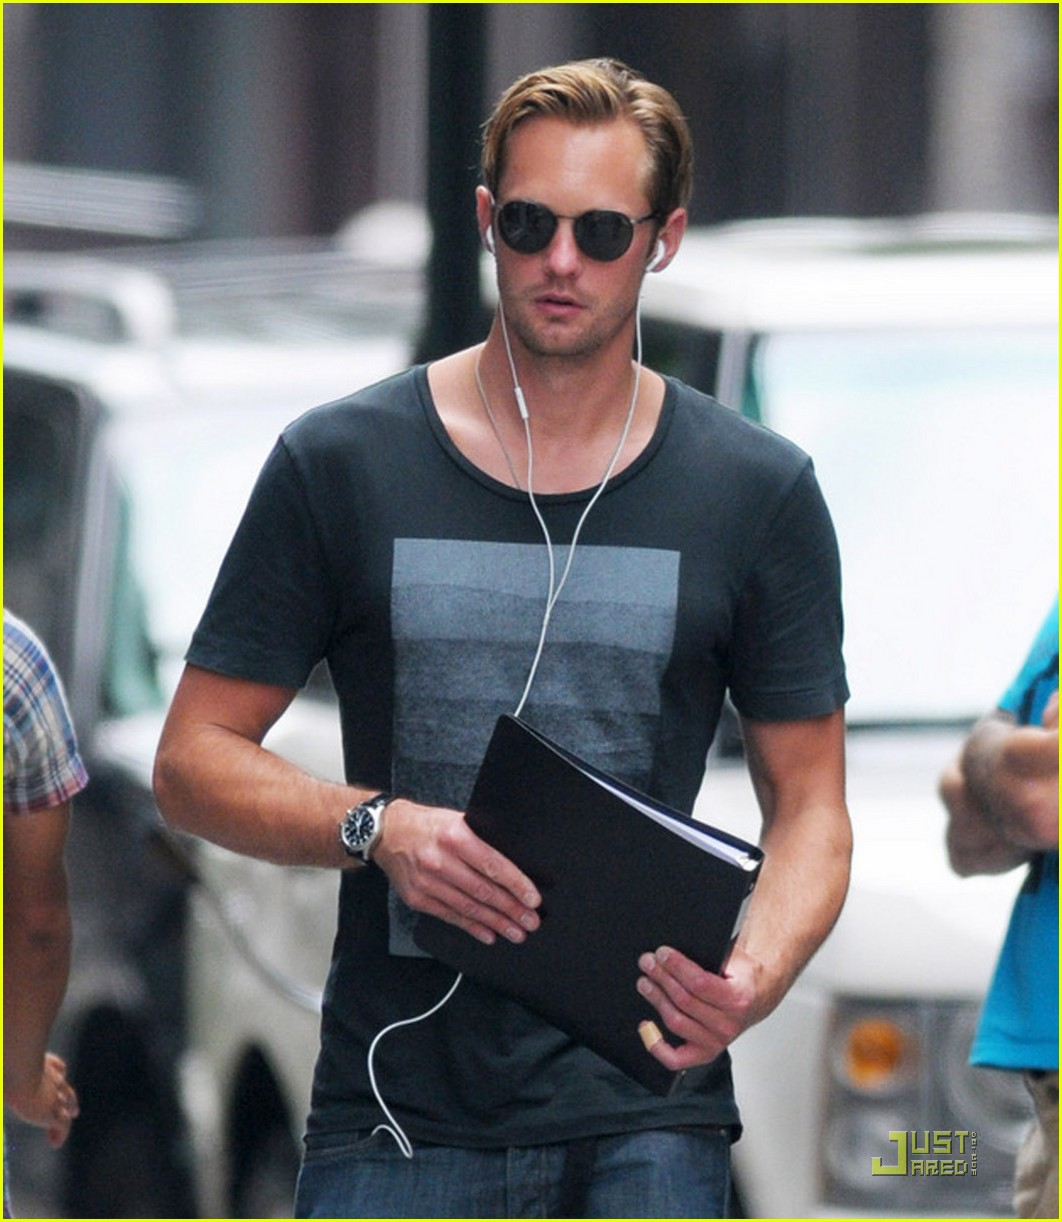 alexander skarsgard repeat outfit offender 042568113